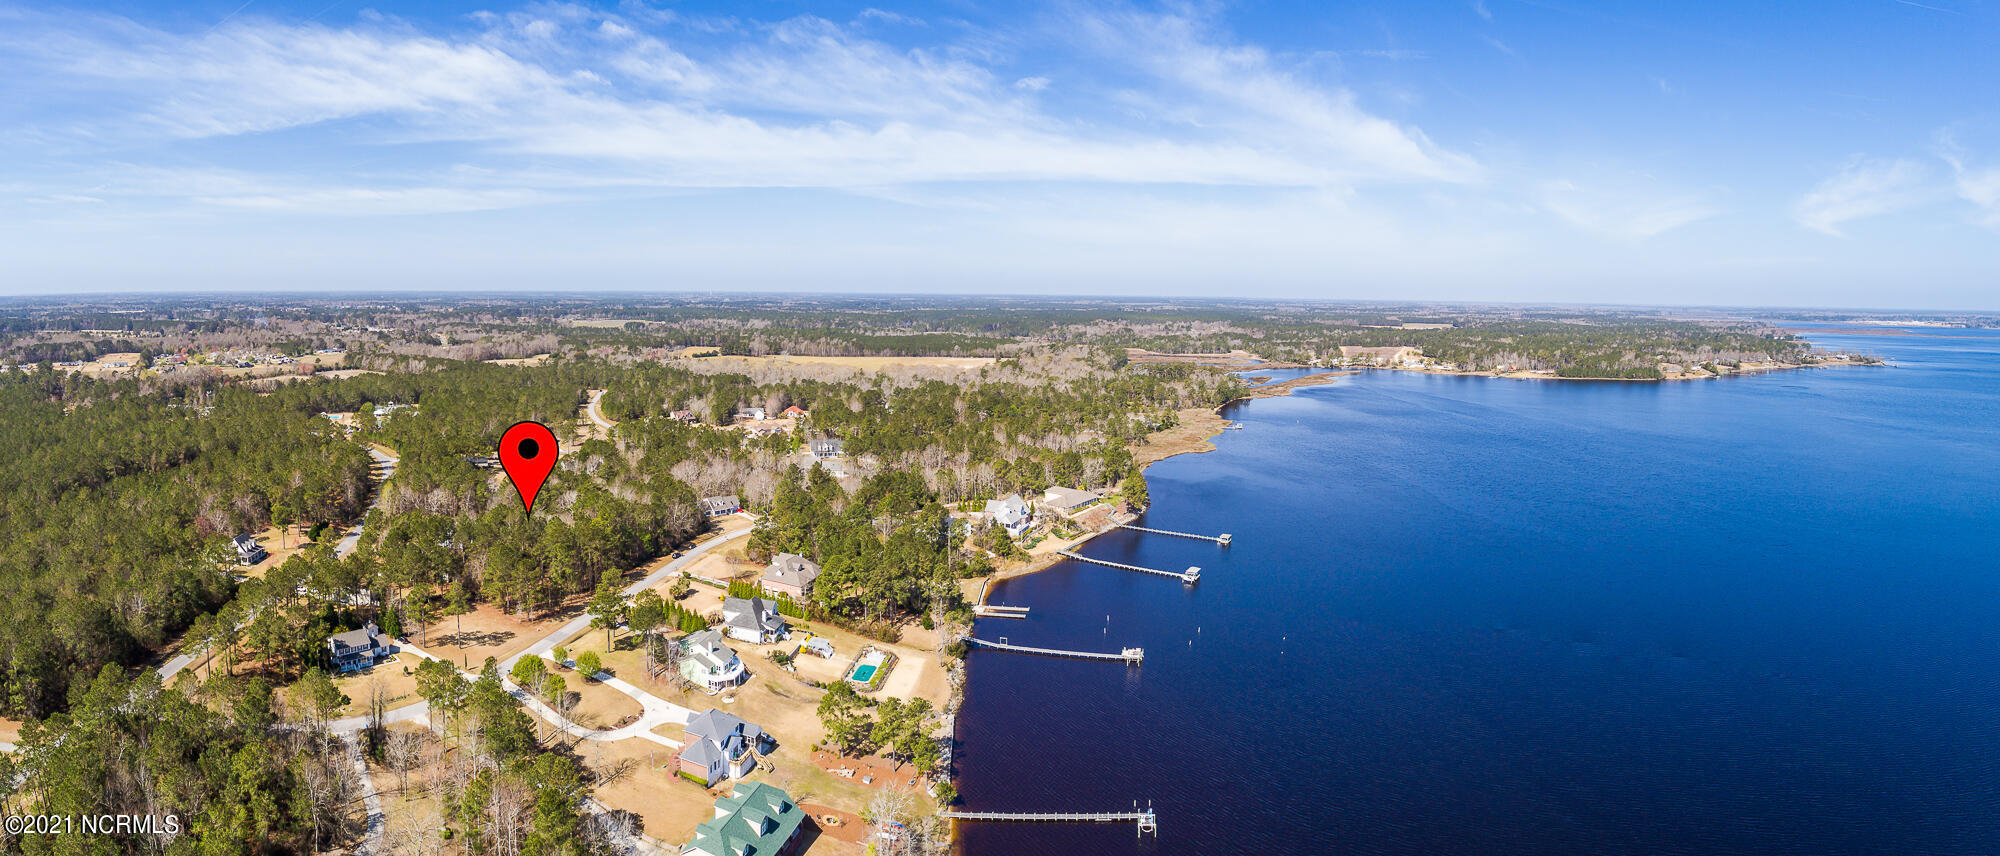 This spacious lot has second row waterviews of the White Oak River.  FIVE bedroom septic permit in hand! Welcome to White Oak Crossing, a premier and private neighborhood with NO city taxes!  Subdivision has a community pool and the community boat ramp and boat dock is just a few lots away. This lot is convenient to the best of Swansboro, Crystal Coast beaches, and Camp Lejeune!